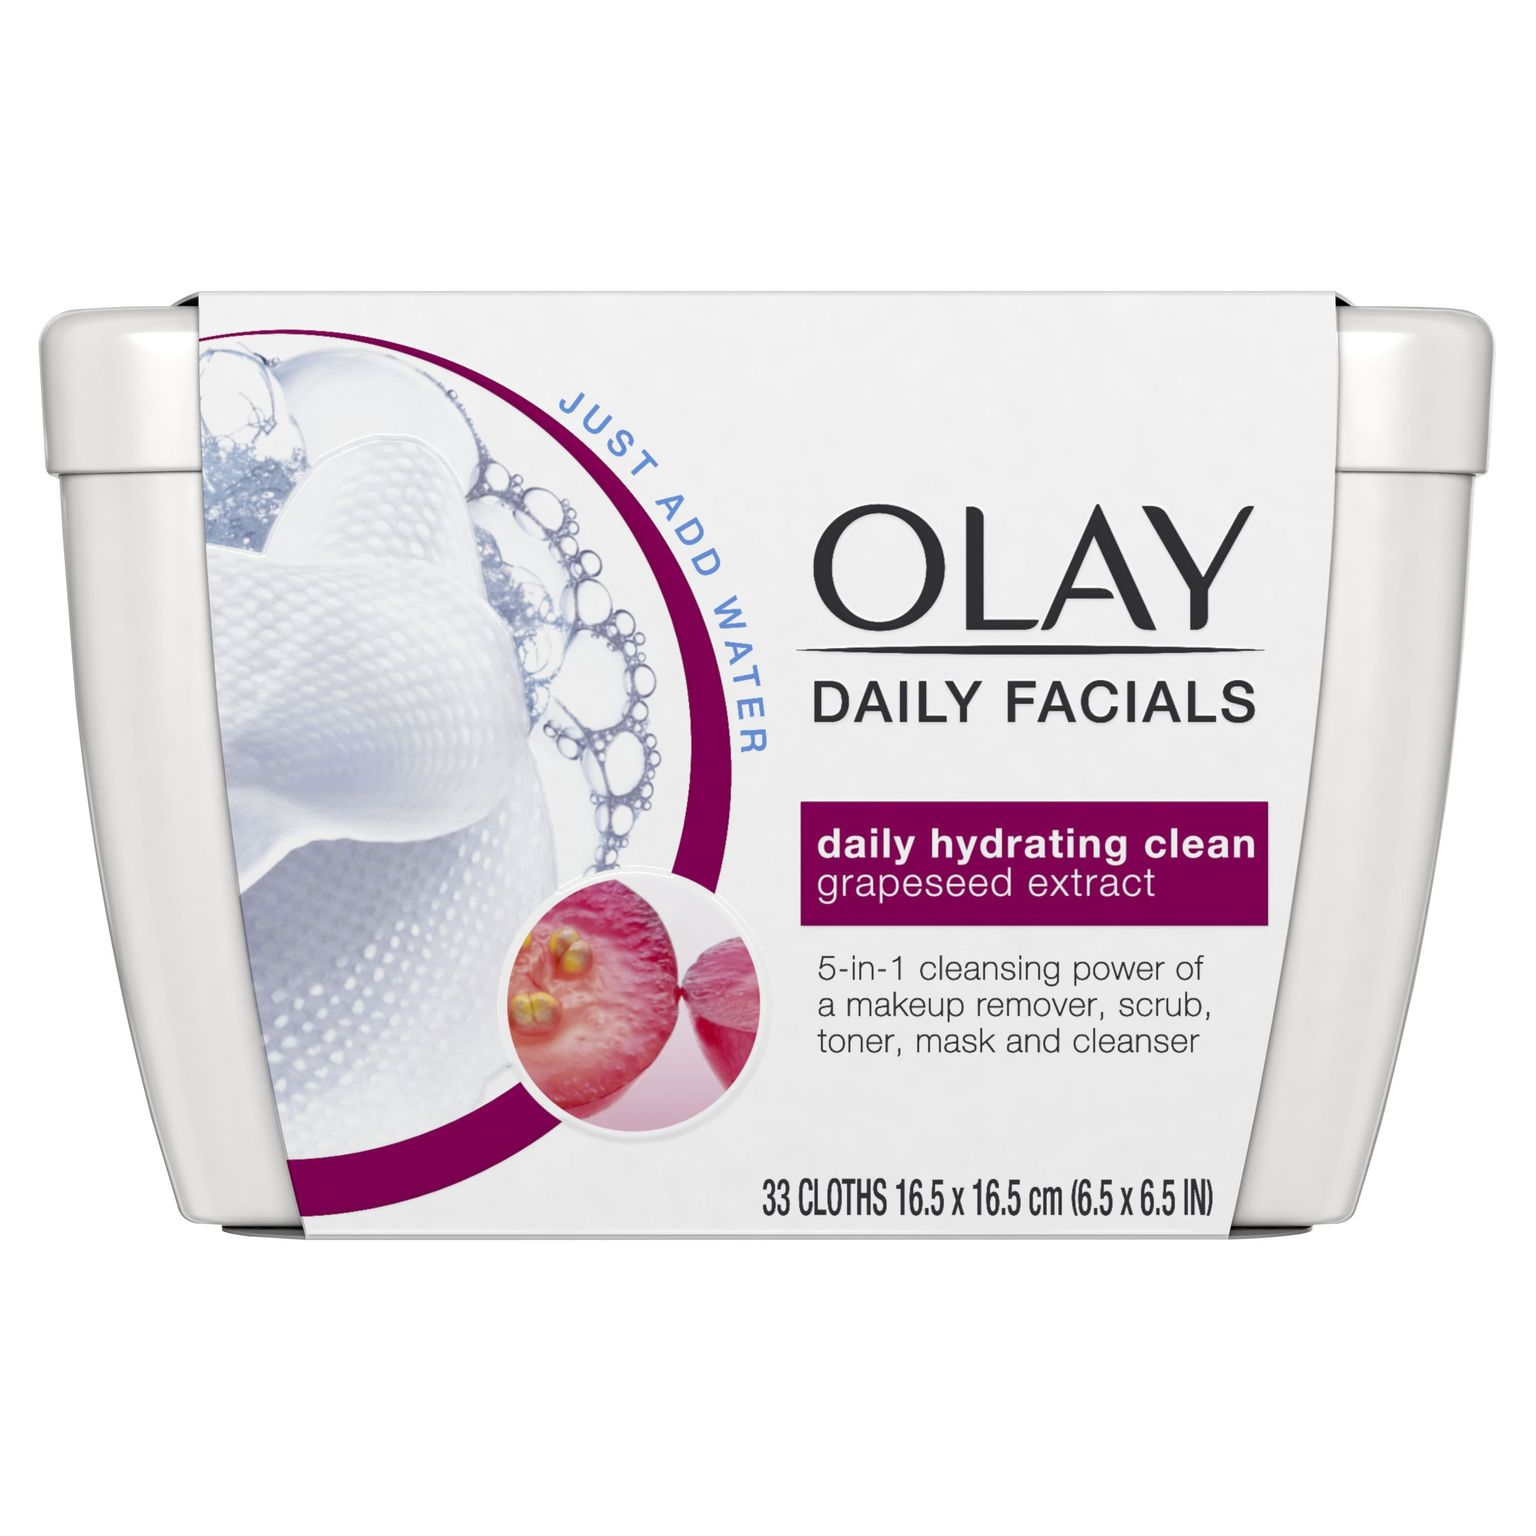 of olay wipes Oil facial